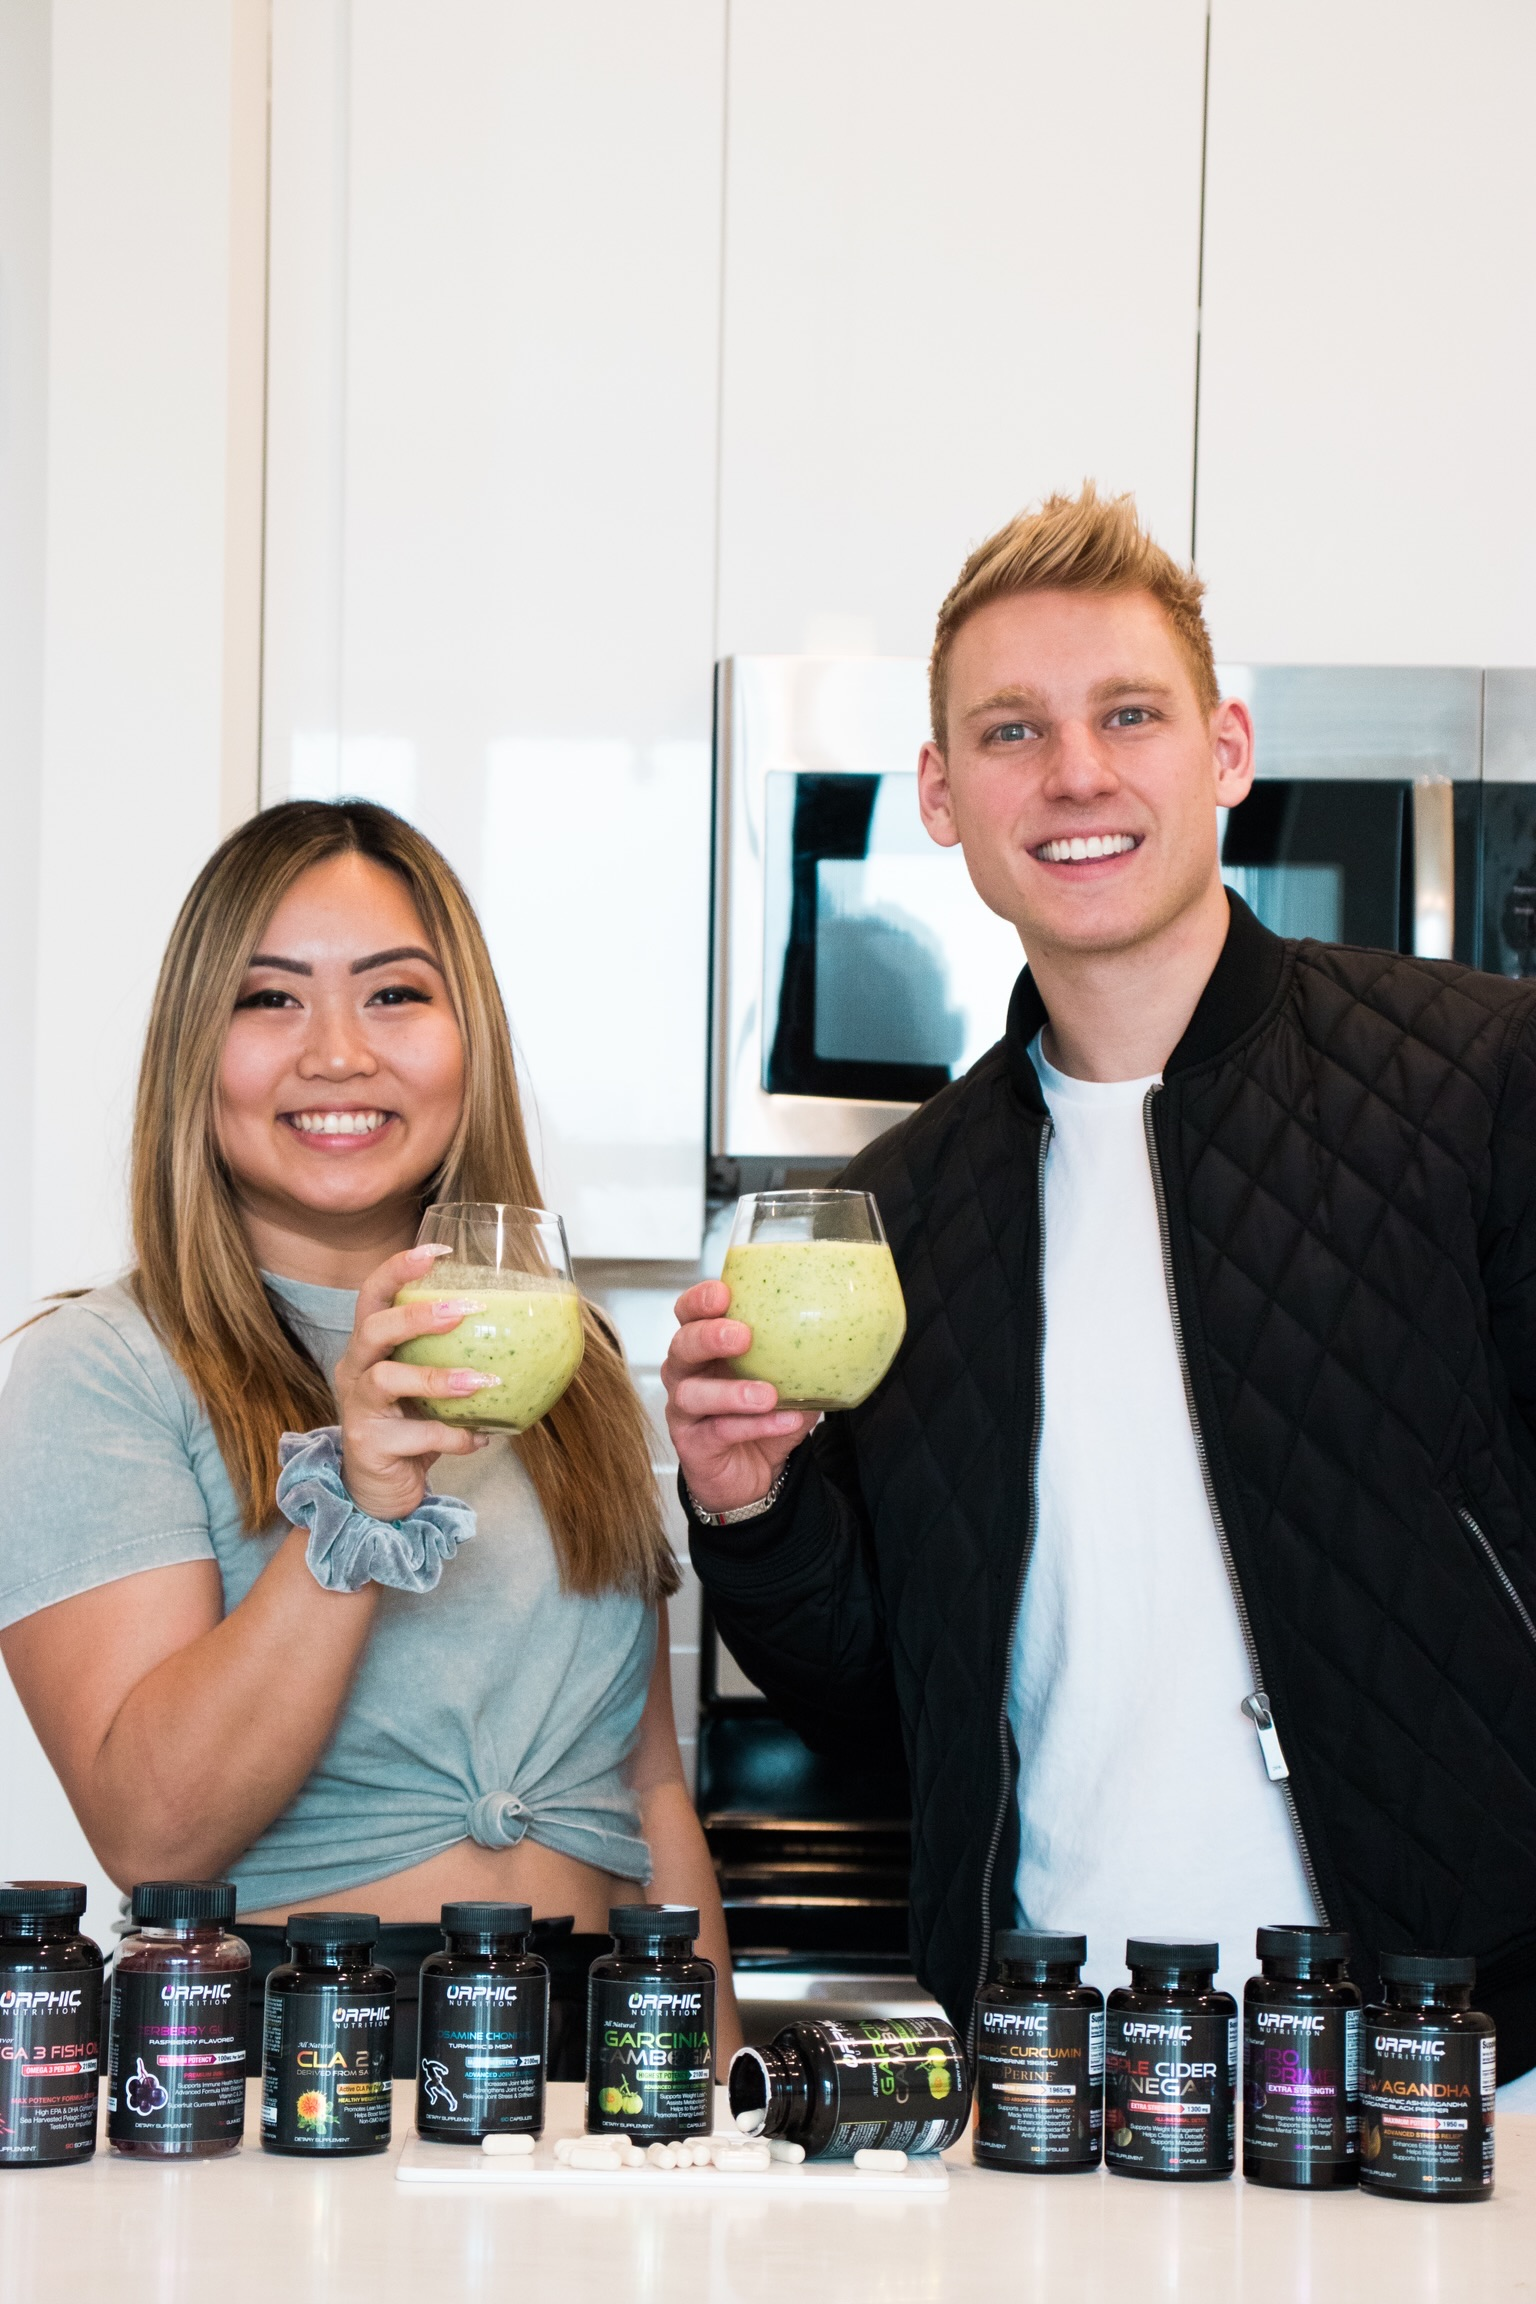 Meet Bryce and Melisa, the founders of Orphic Nutrition Taking E-commerce by Storm